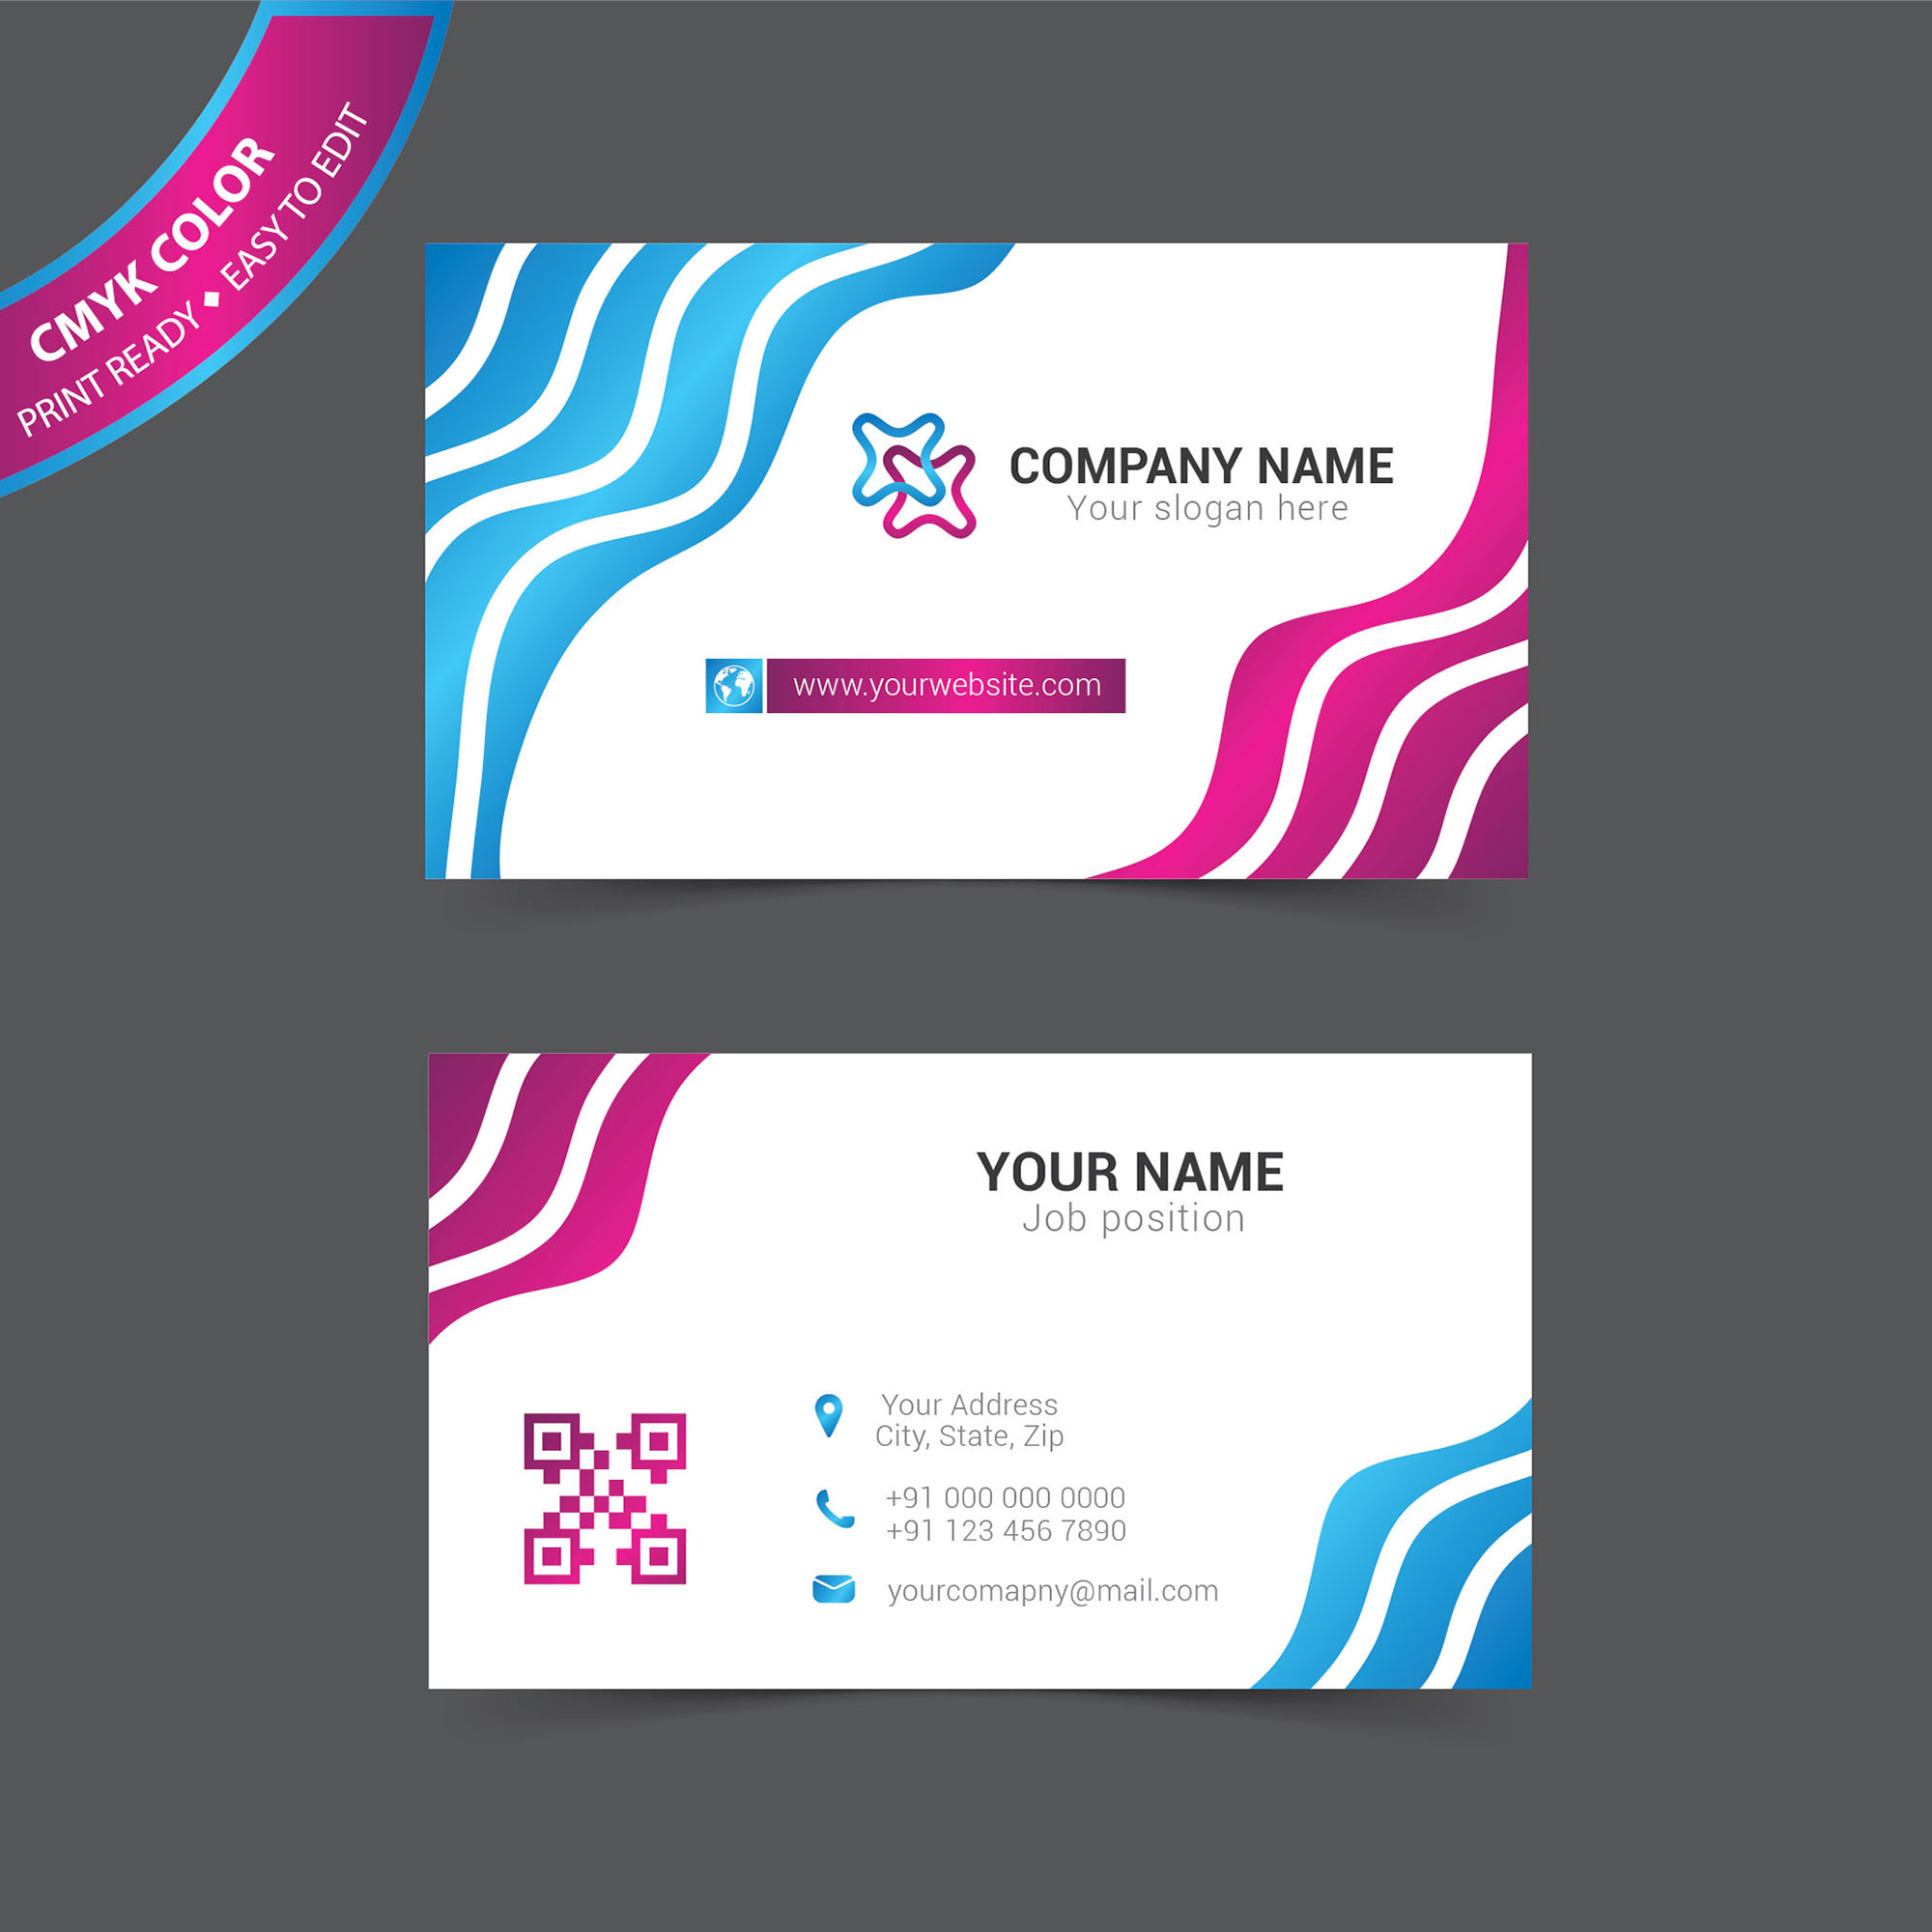 Digital business card free download free vector wisxi business card business cards business card design business card template design templates fbccfo Gallery